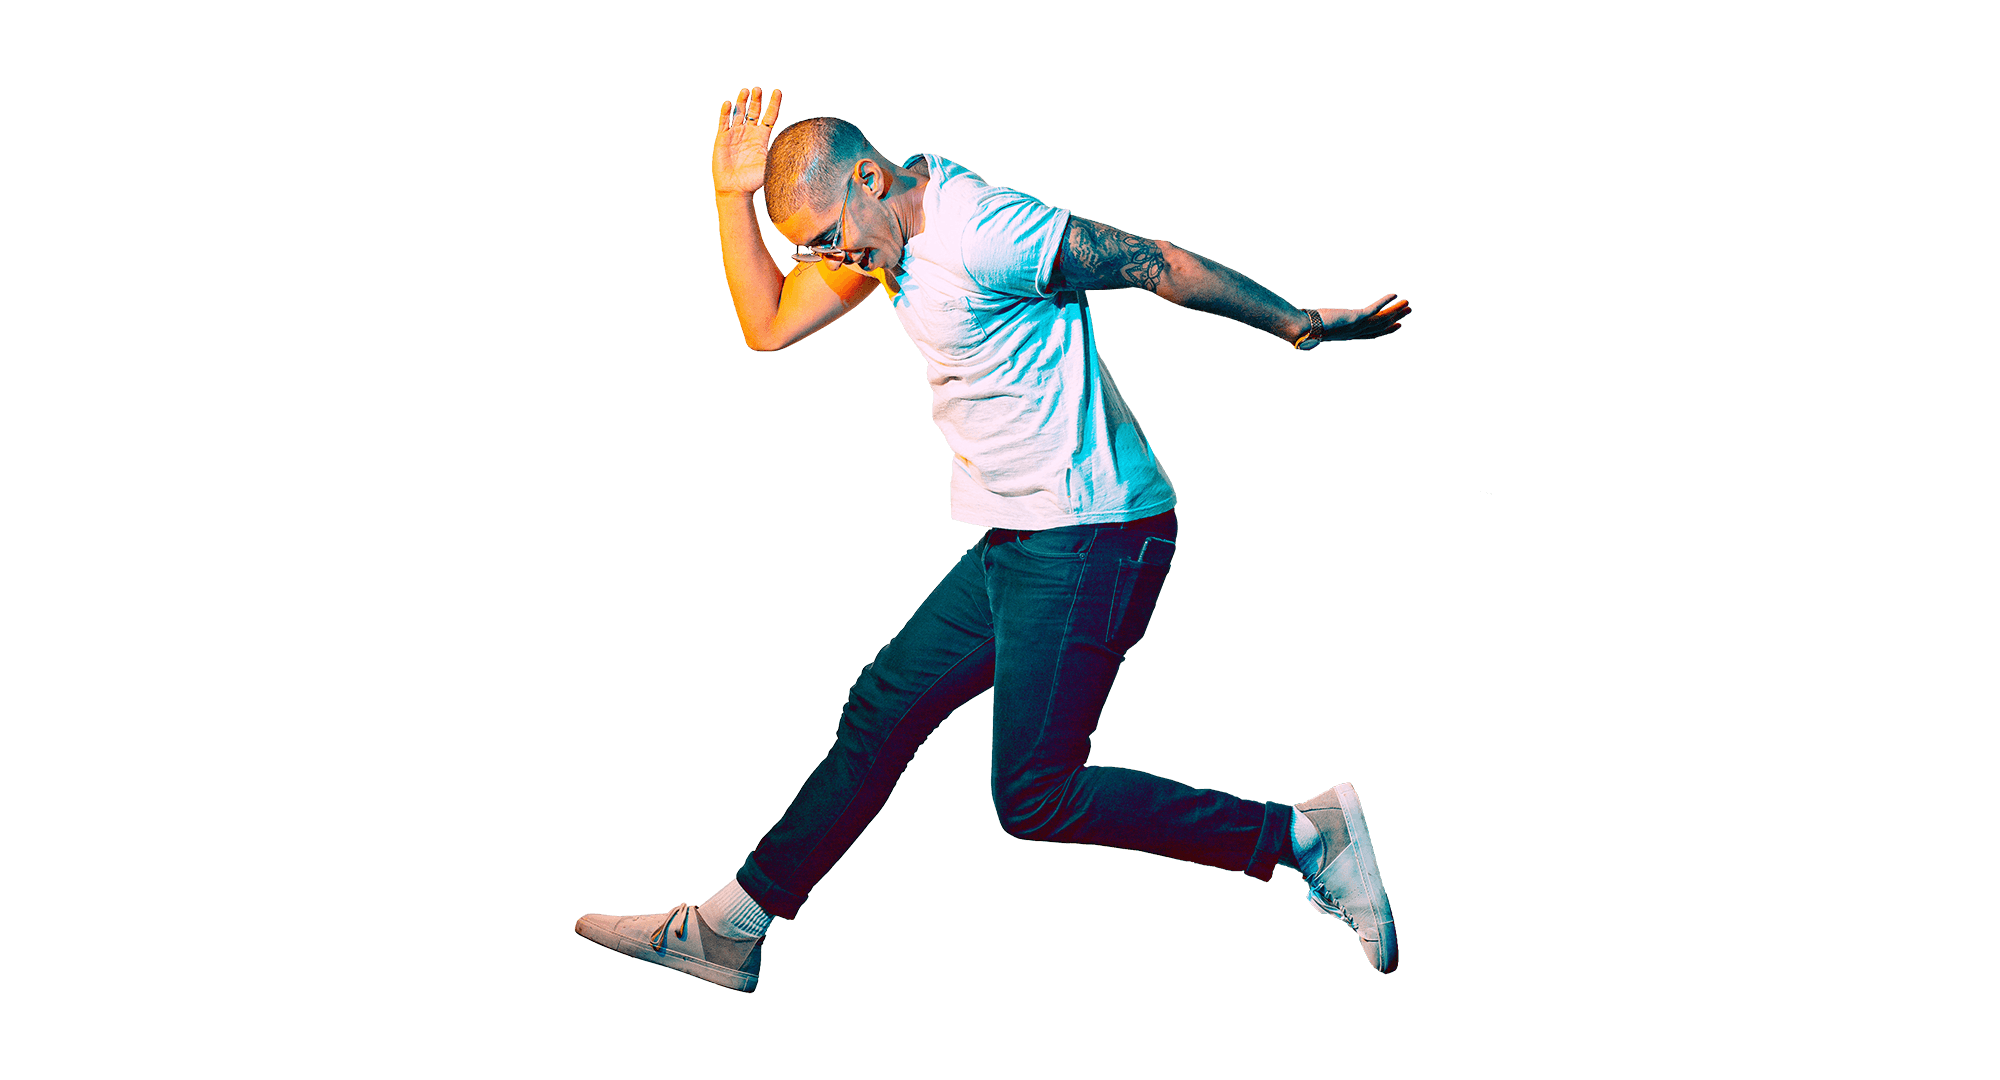 Young smiling man, jumping in the air.